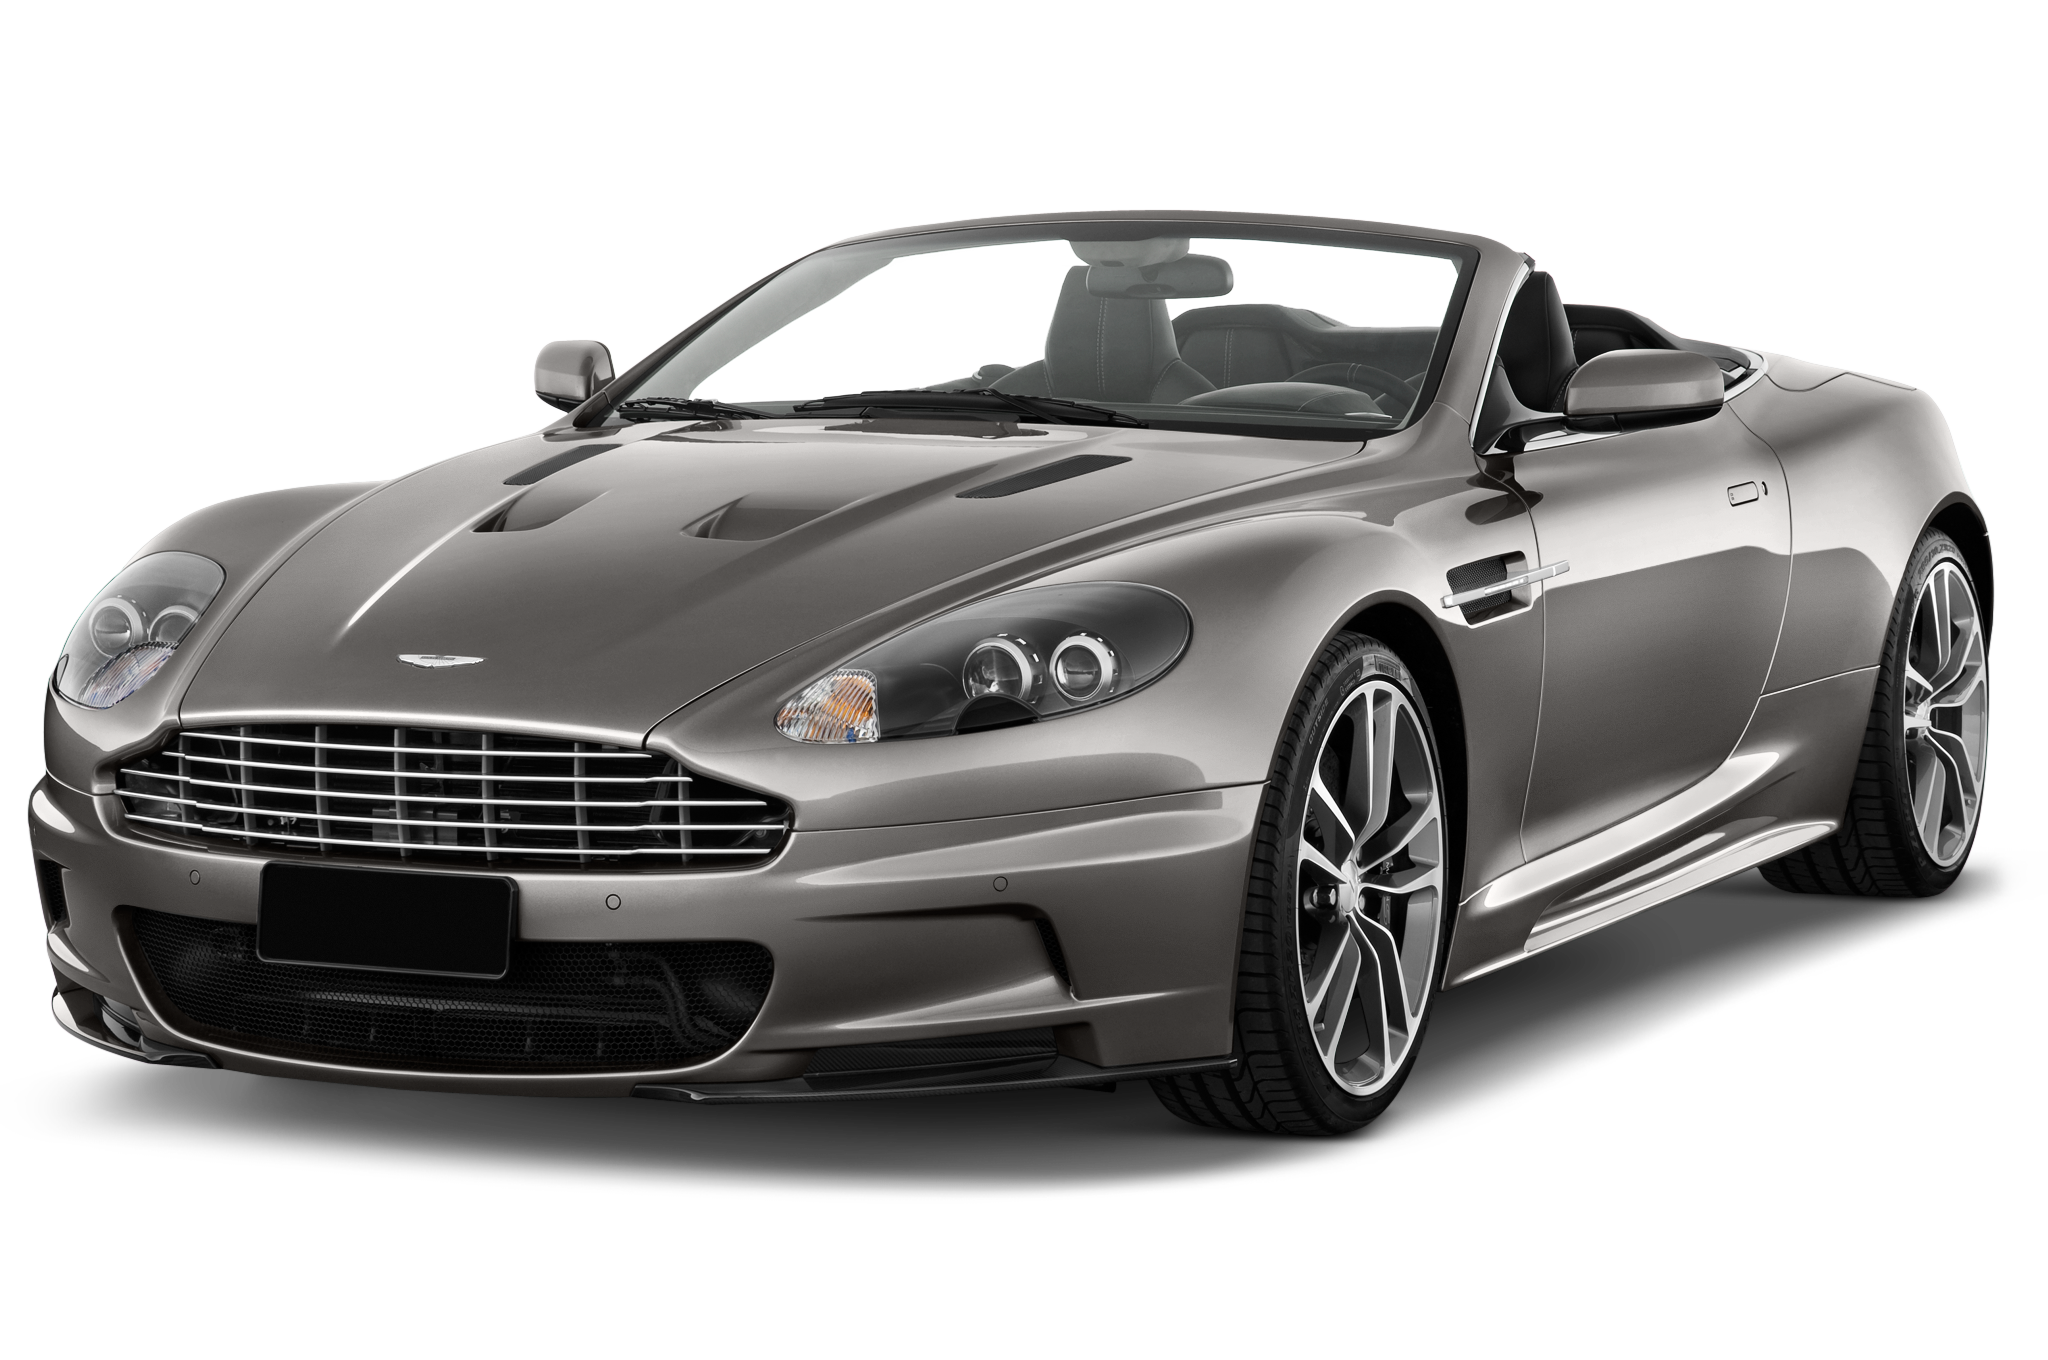 2012 aston martin dbs reviews and rating | motortrend